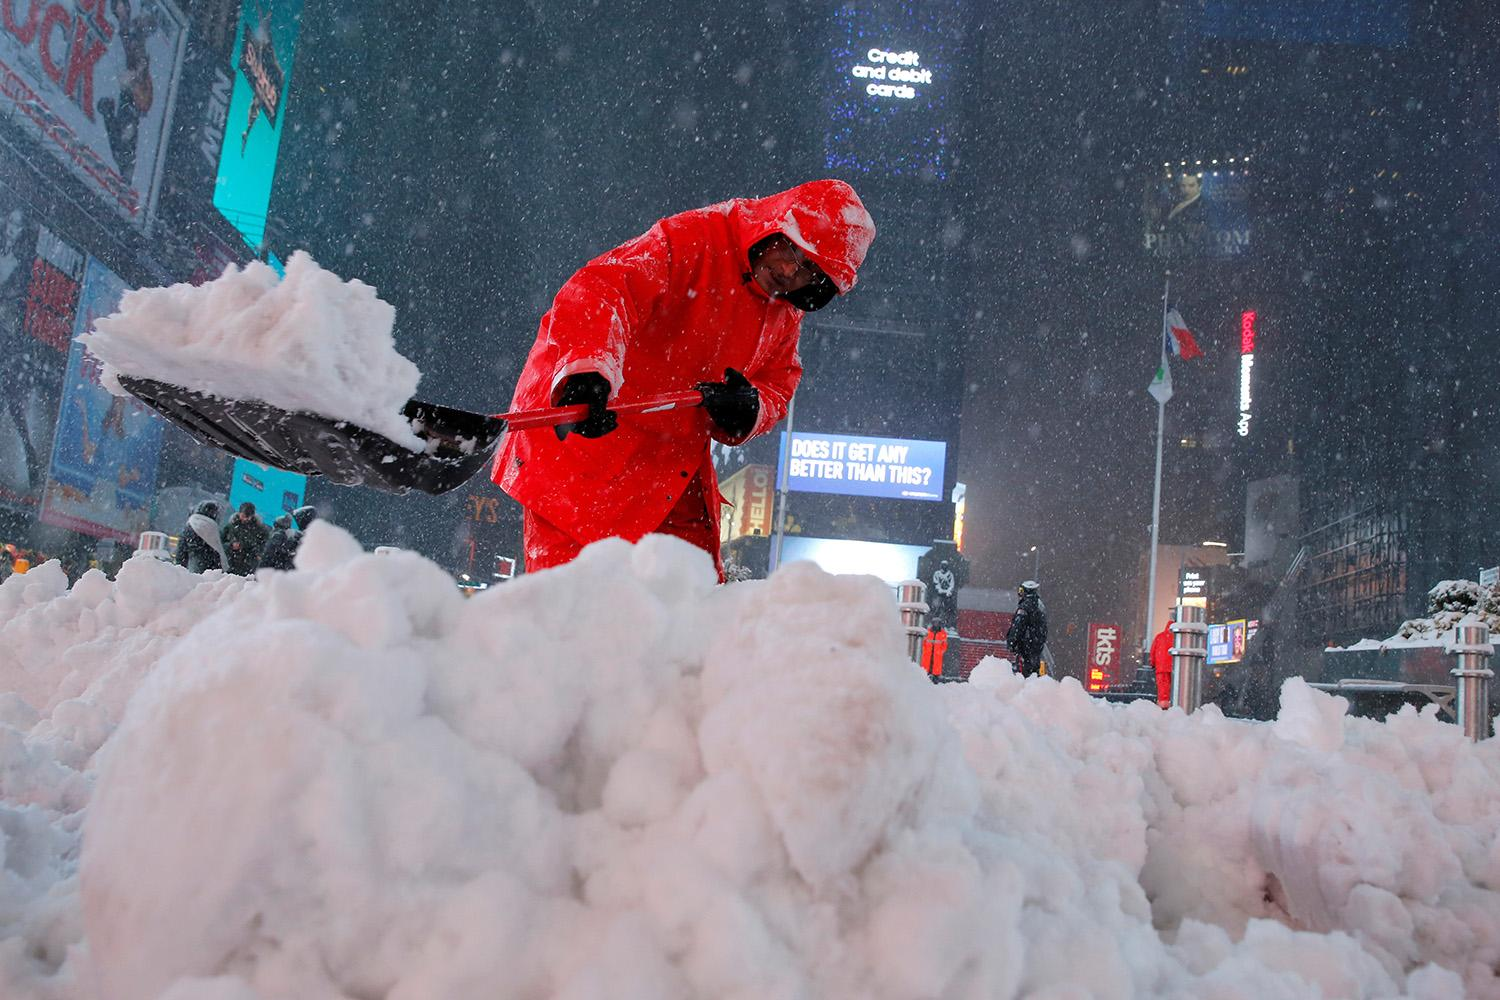 <p>A worker clears snow in Times Square during a winter storm in New York, March 14, 2017. (Andrew Kelly/Reuters) </p>